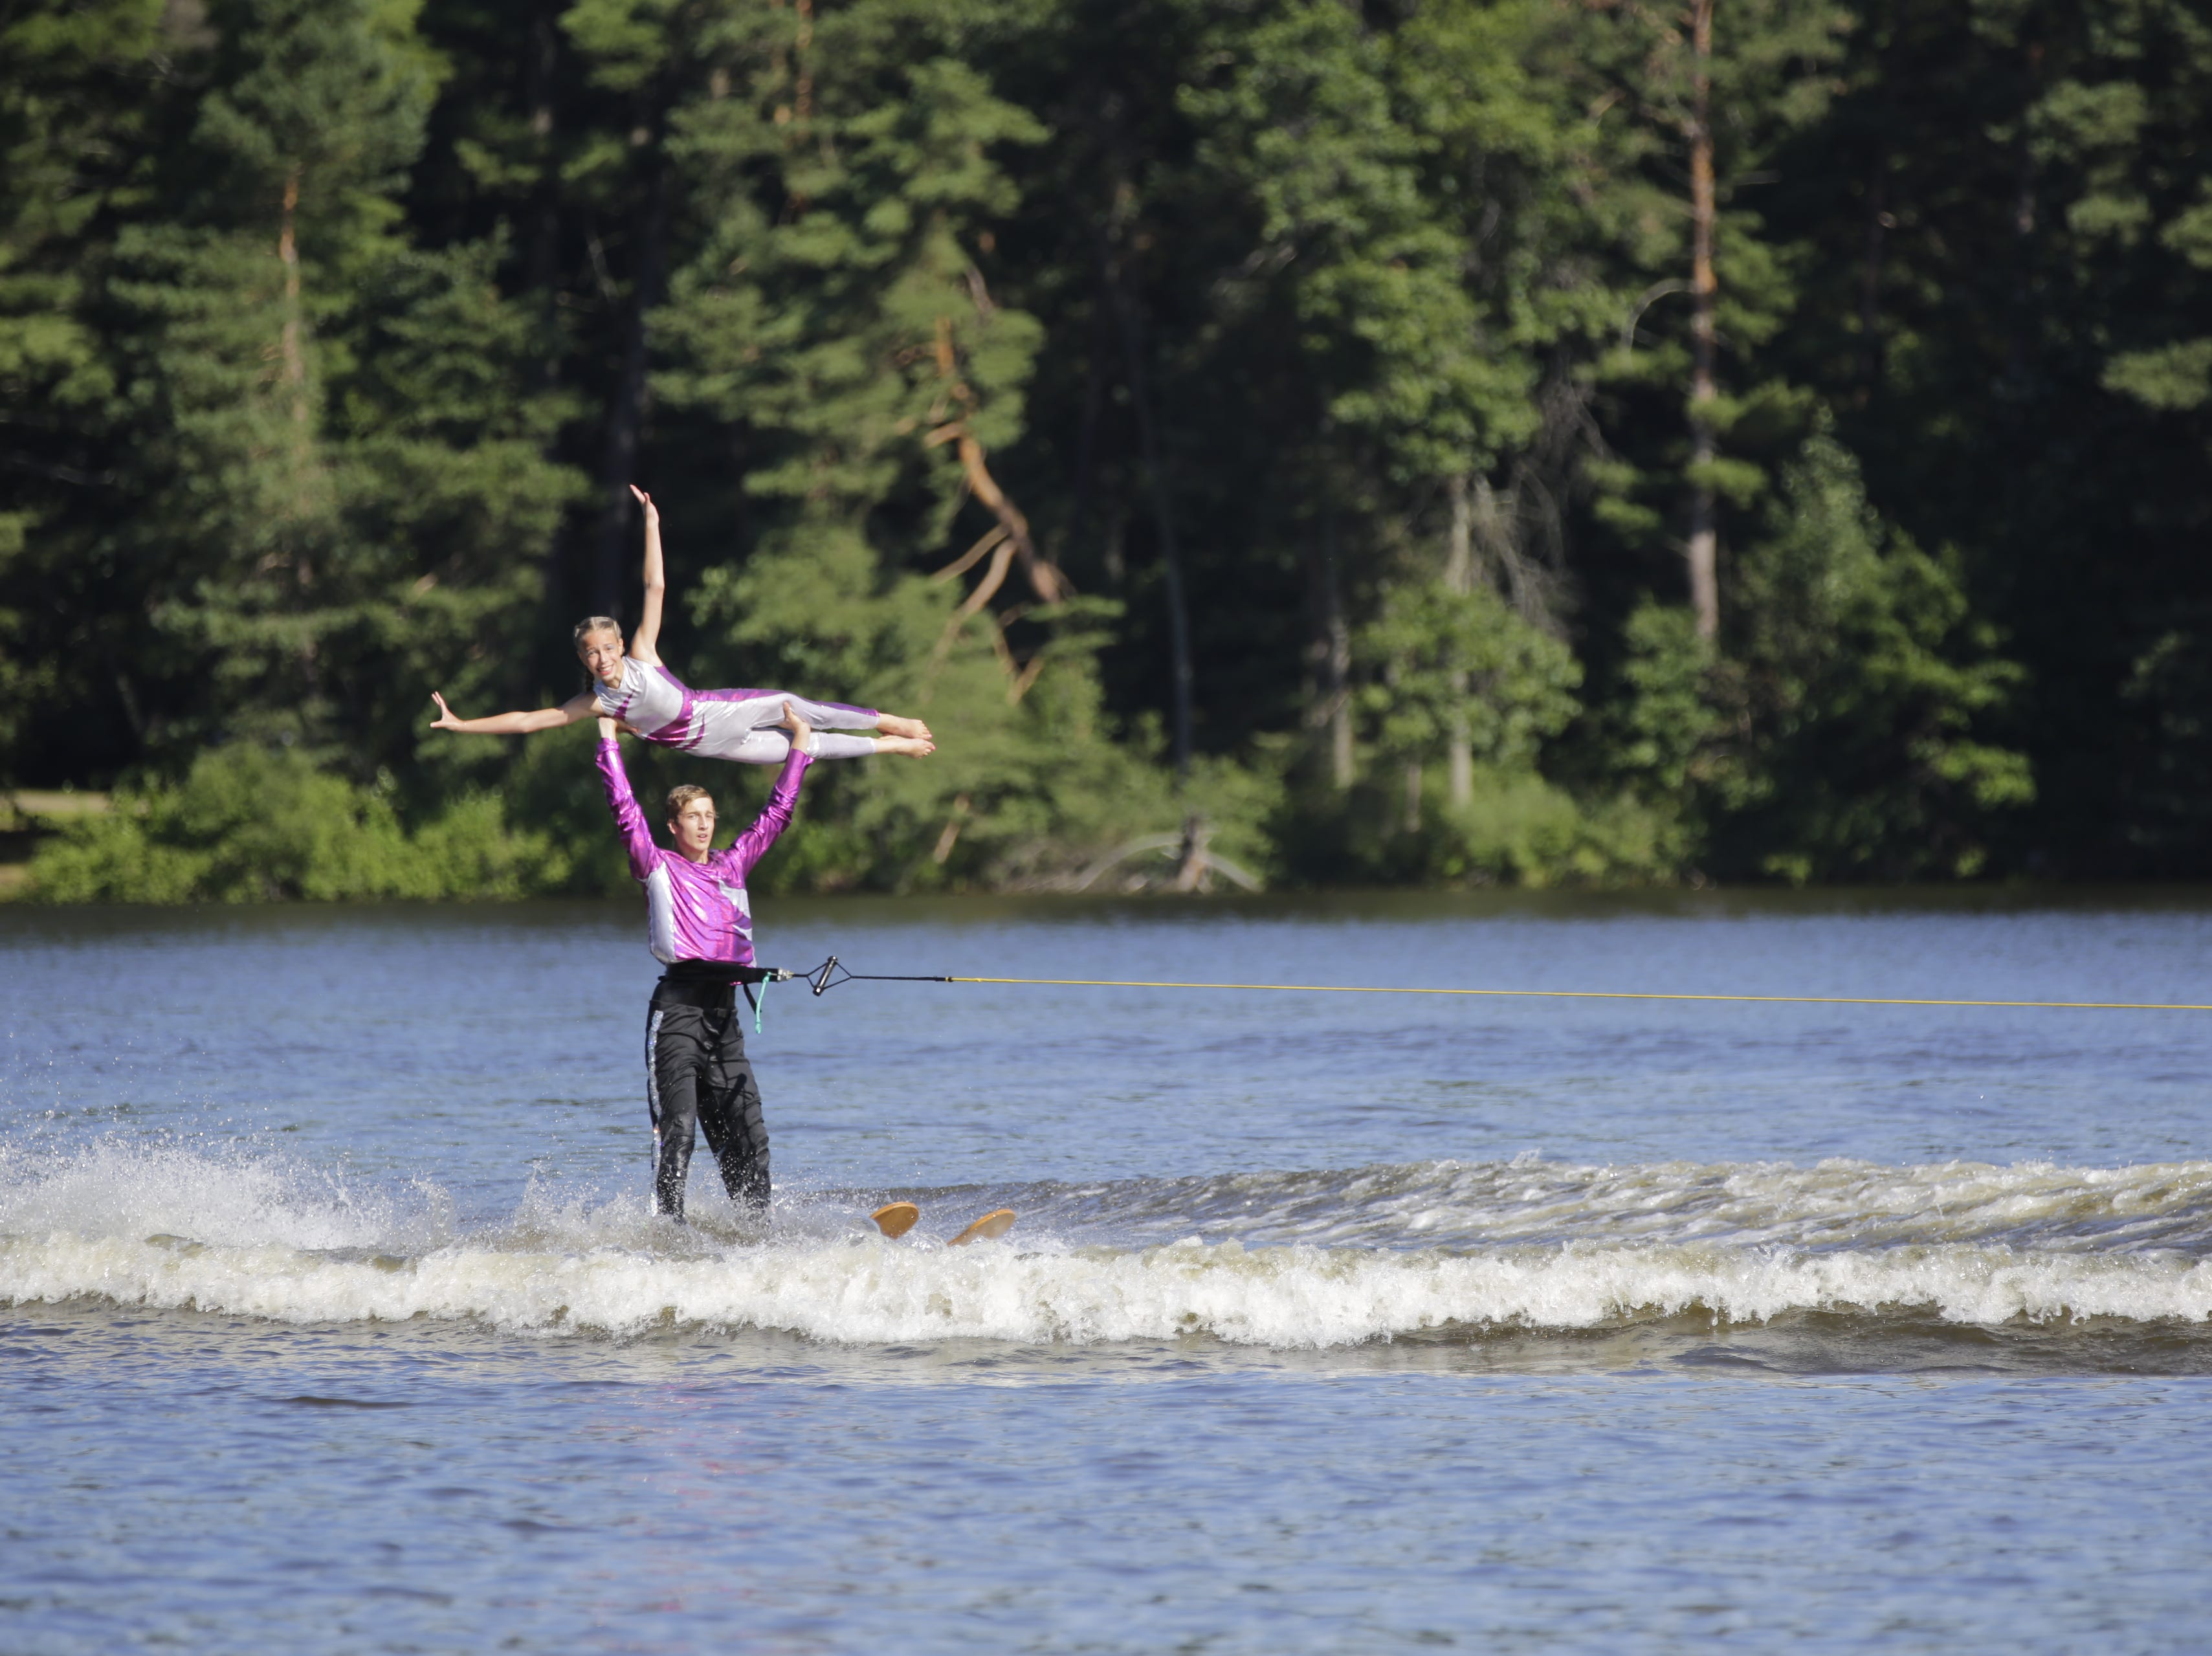 Jacob VanEgtern and Morgan Mueller compete in the doubles category during the Wisconsin State Water Ski Show Championships on Lake Wazeecha in Kellner Thursday, July 19, 2018.